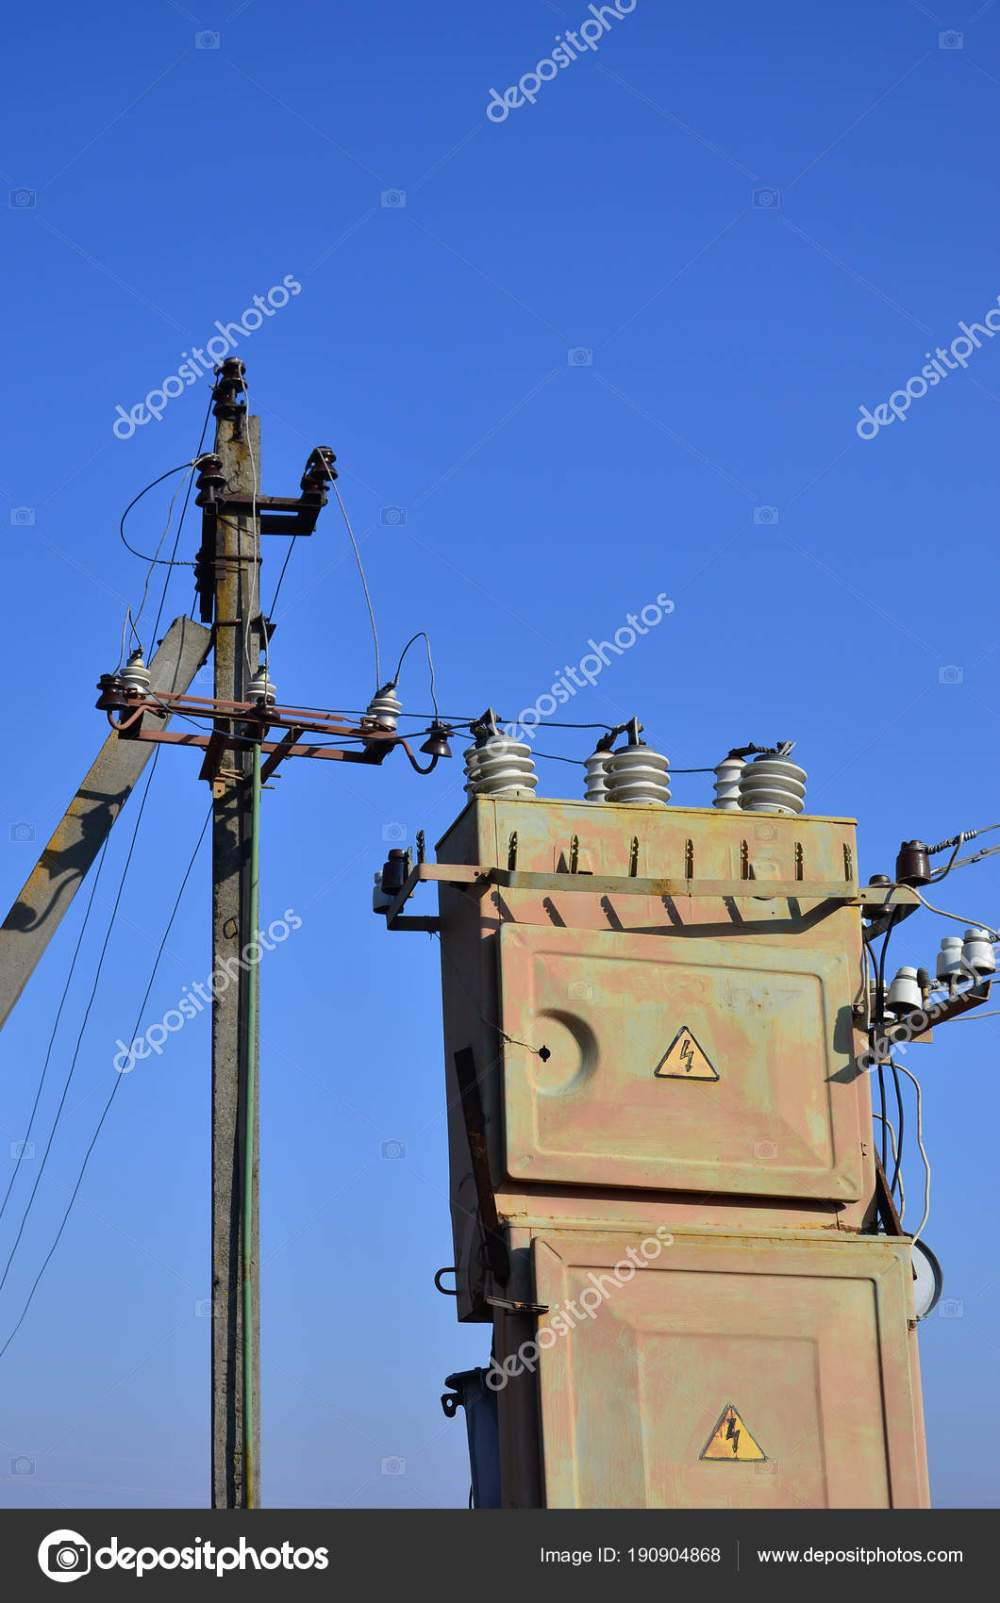 medium resolution of old obsolete electrical transformer background cloudless blue sky device distribution stock photo